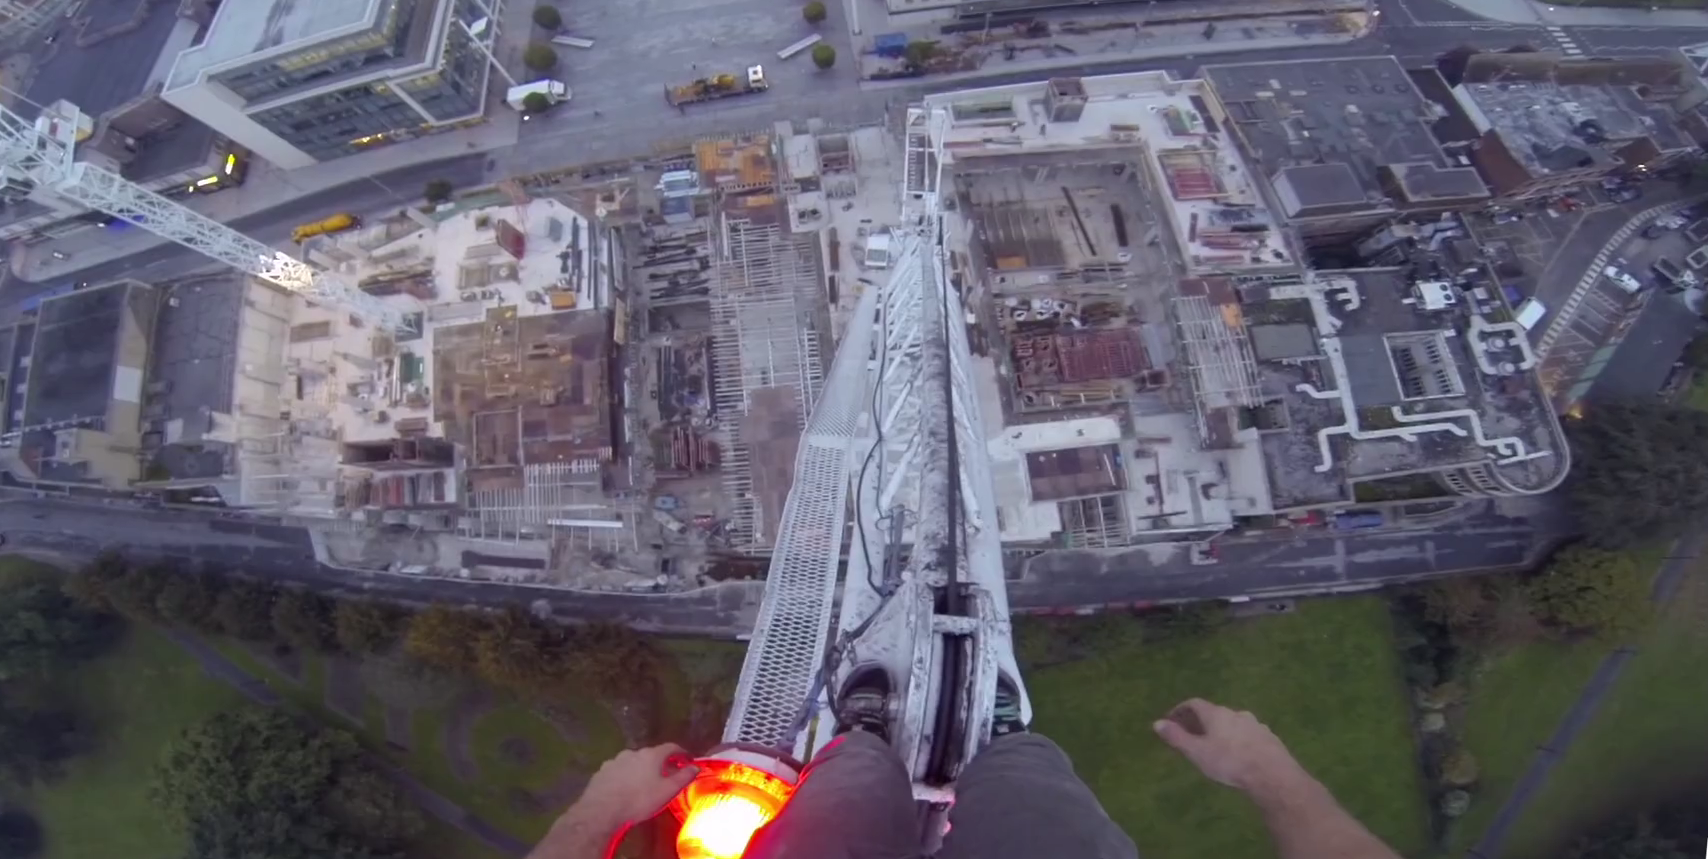 If youre scared of heights, hit the back button now...